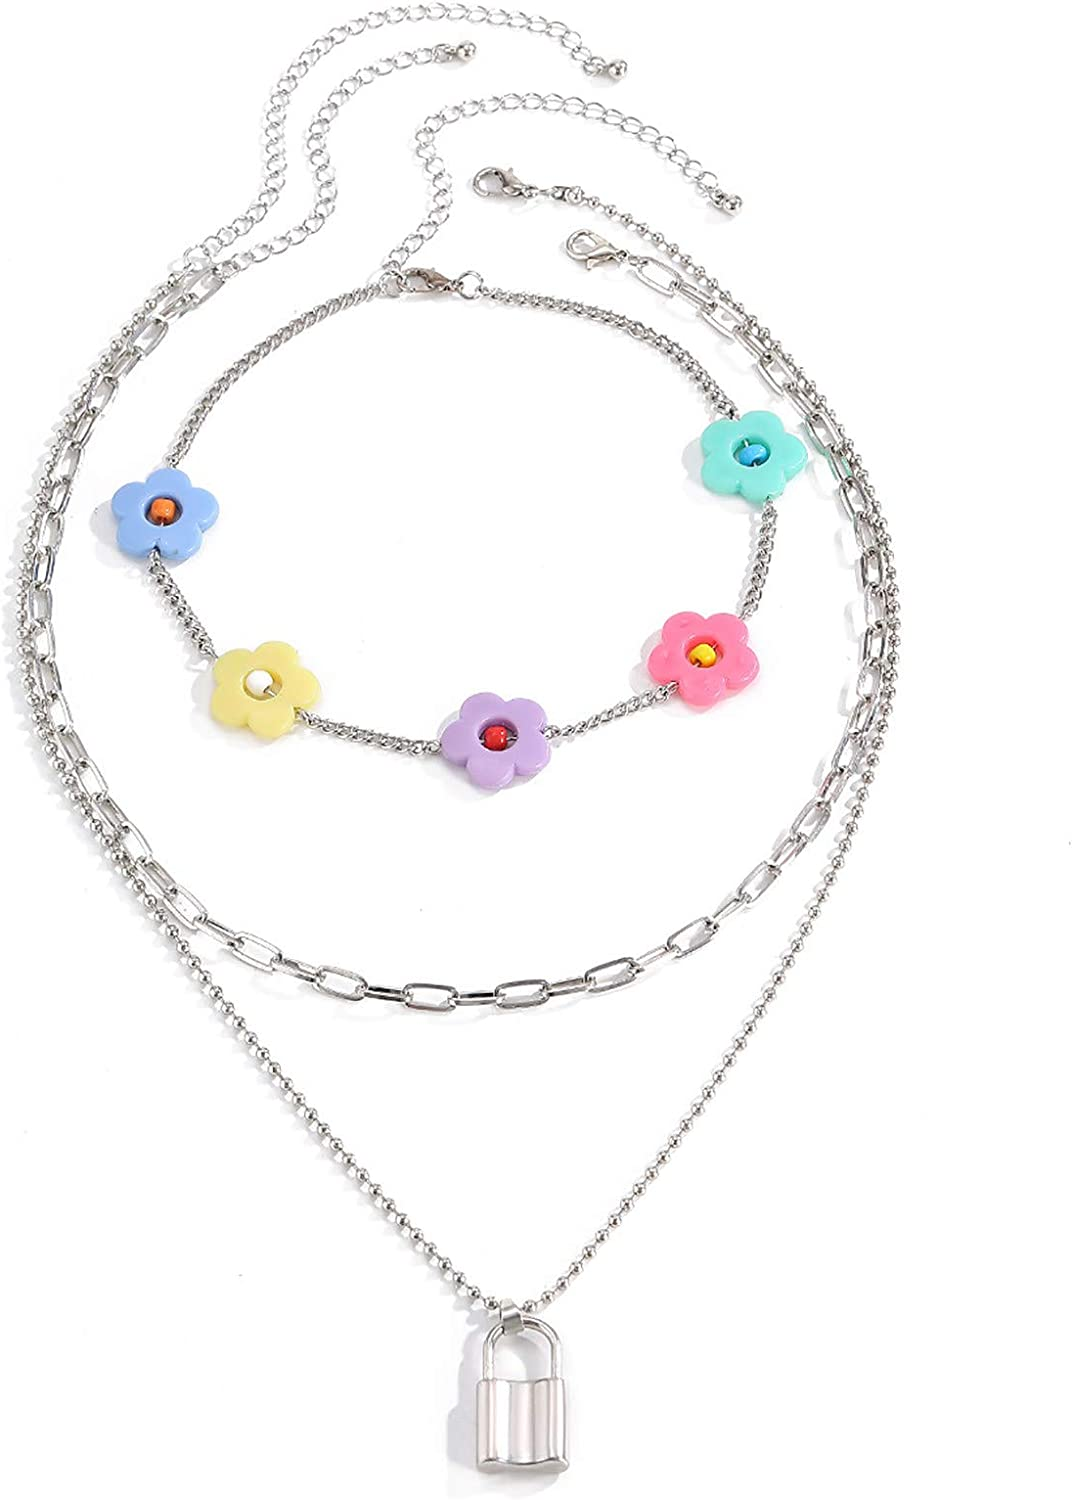 JENPECH Fashion Pendant Necklace Rhinestone Clavicle Chain Jewelry,3Pcs Creative Flower Clavicle Set Chain Simple Personality Lock Alloy Necklaces - White